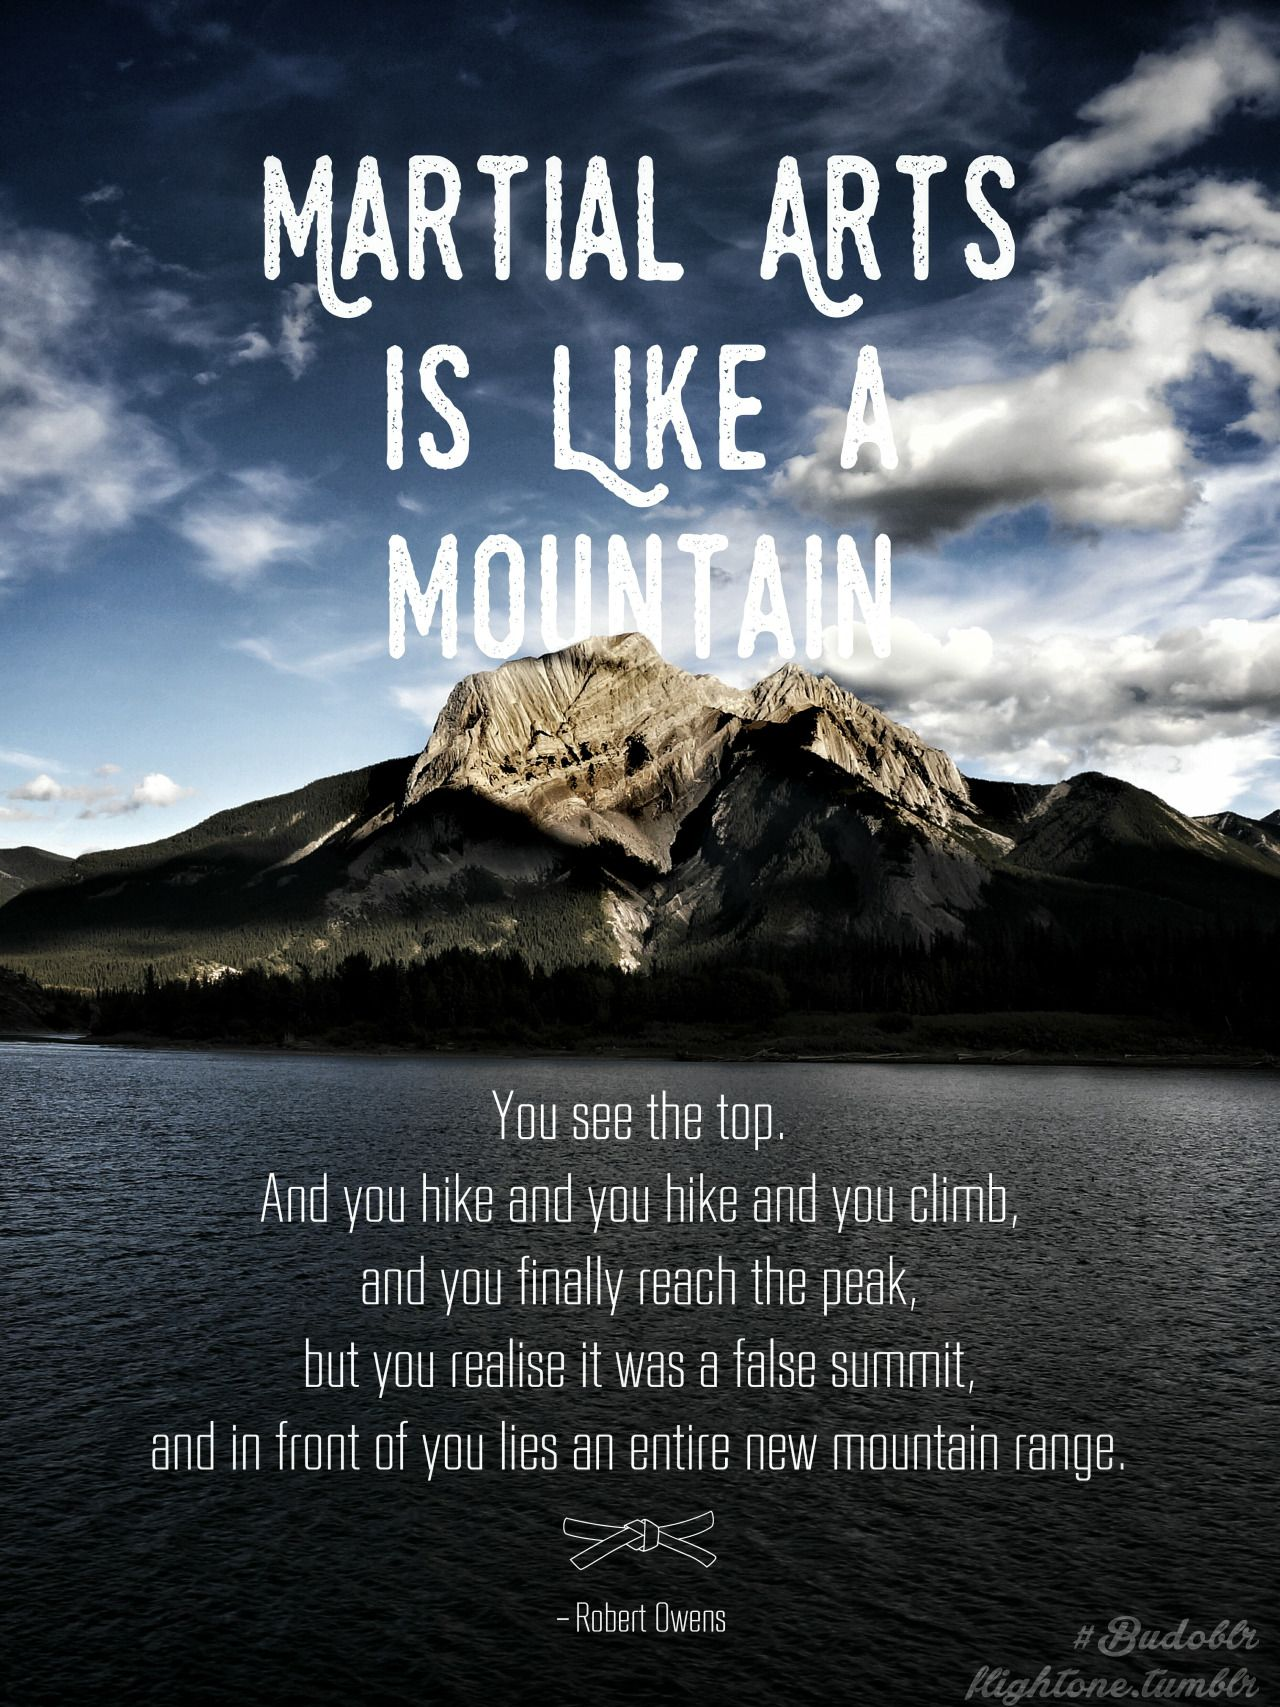 Martial arts quotes not just for martial artists. Karate